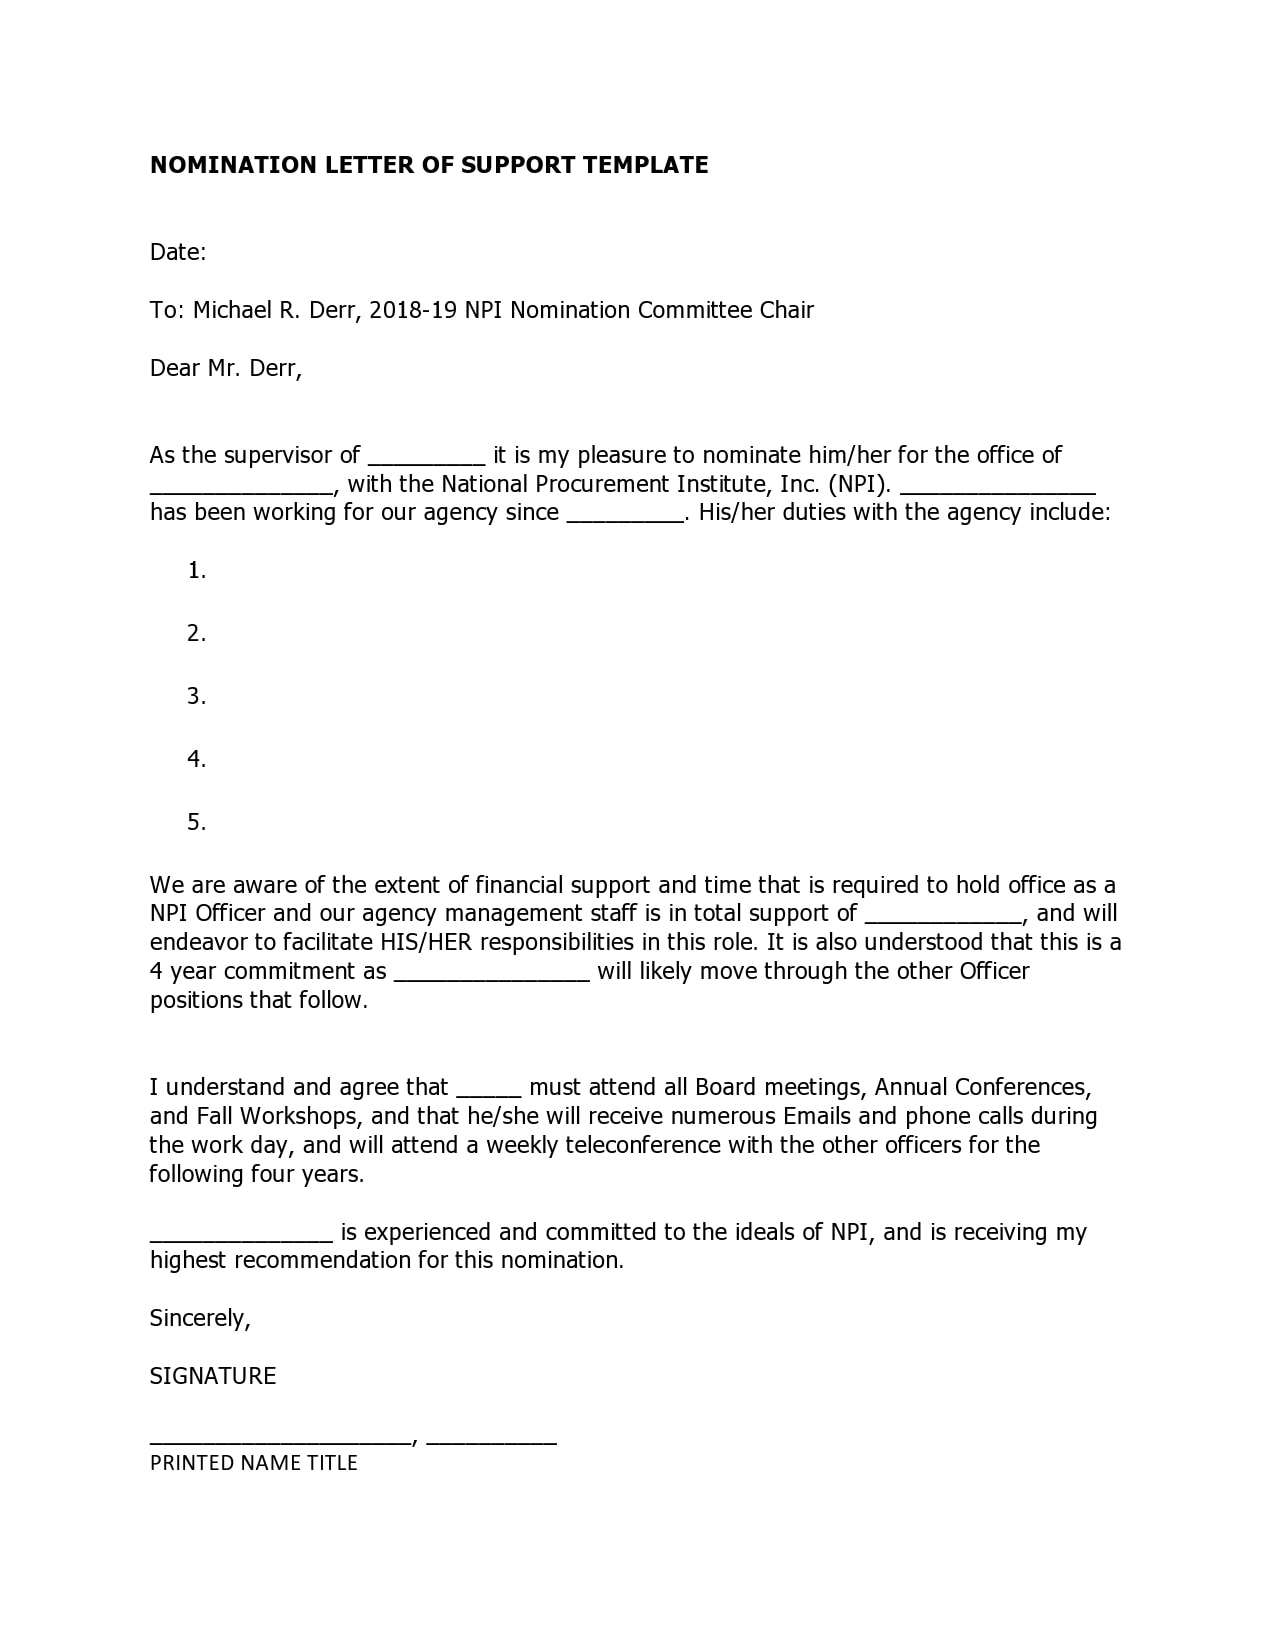 letter of support template 19